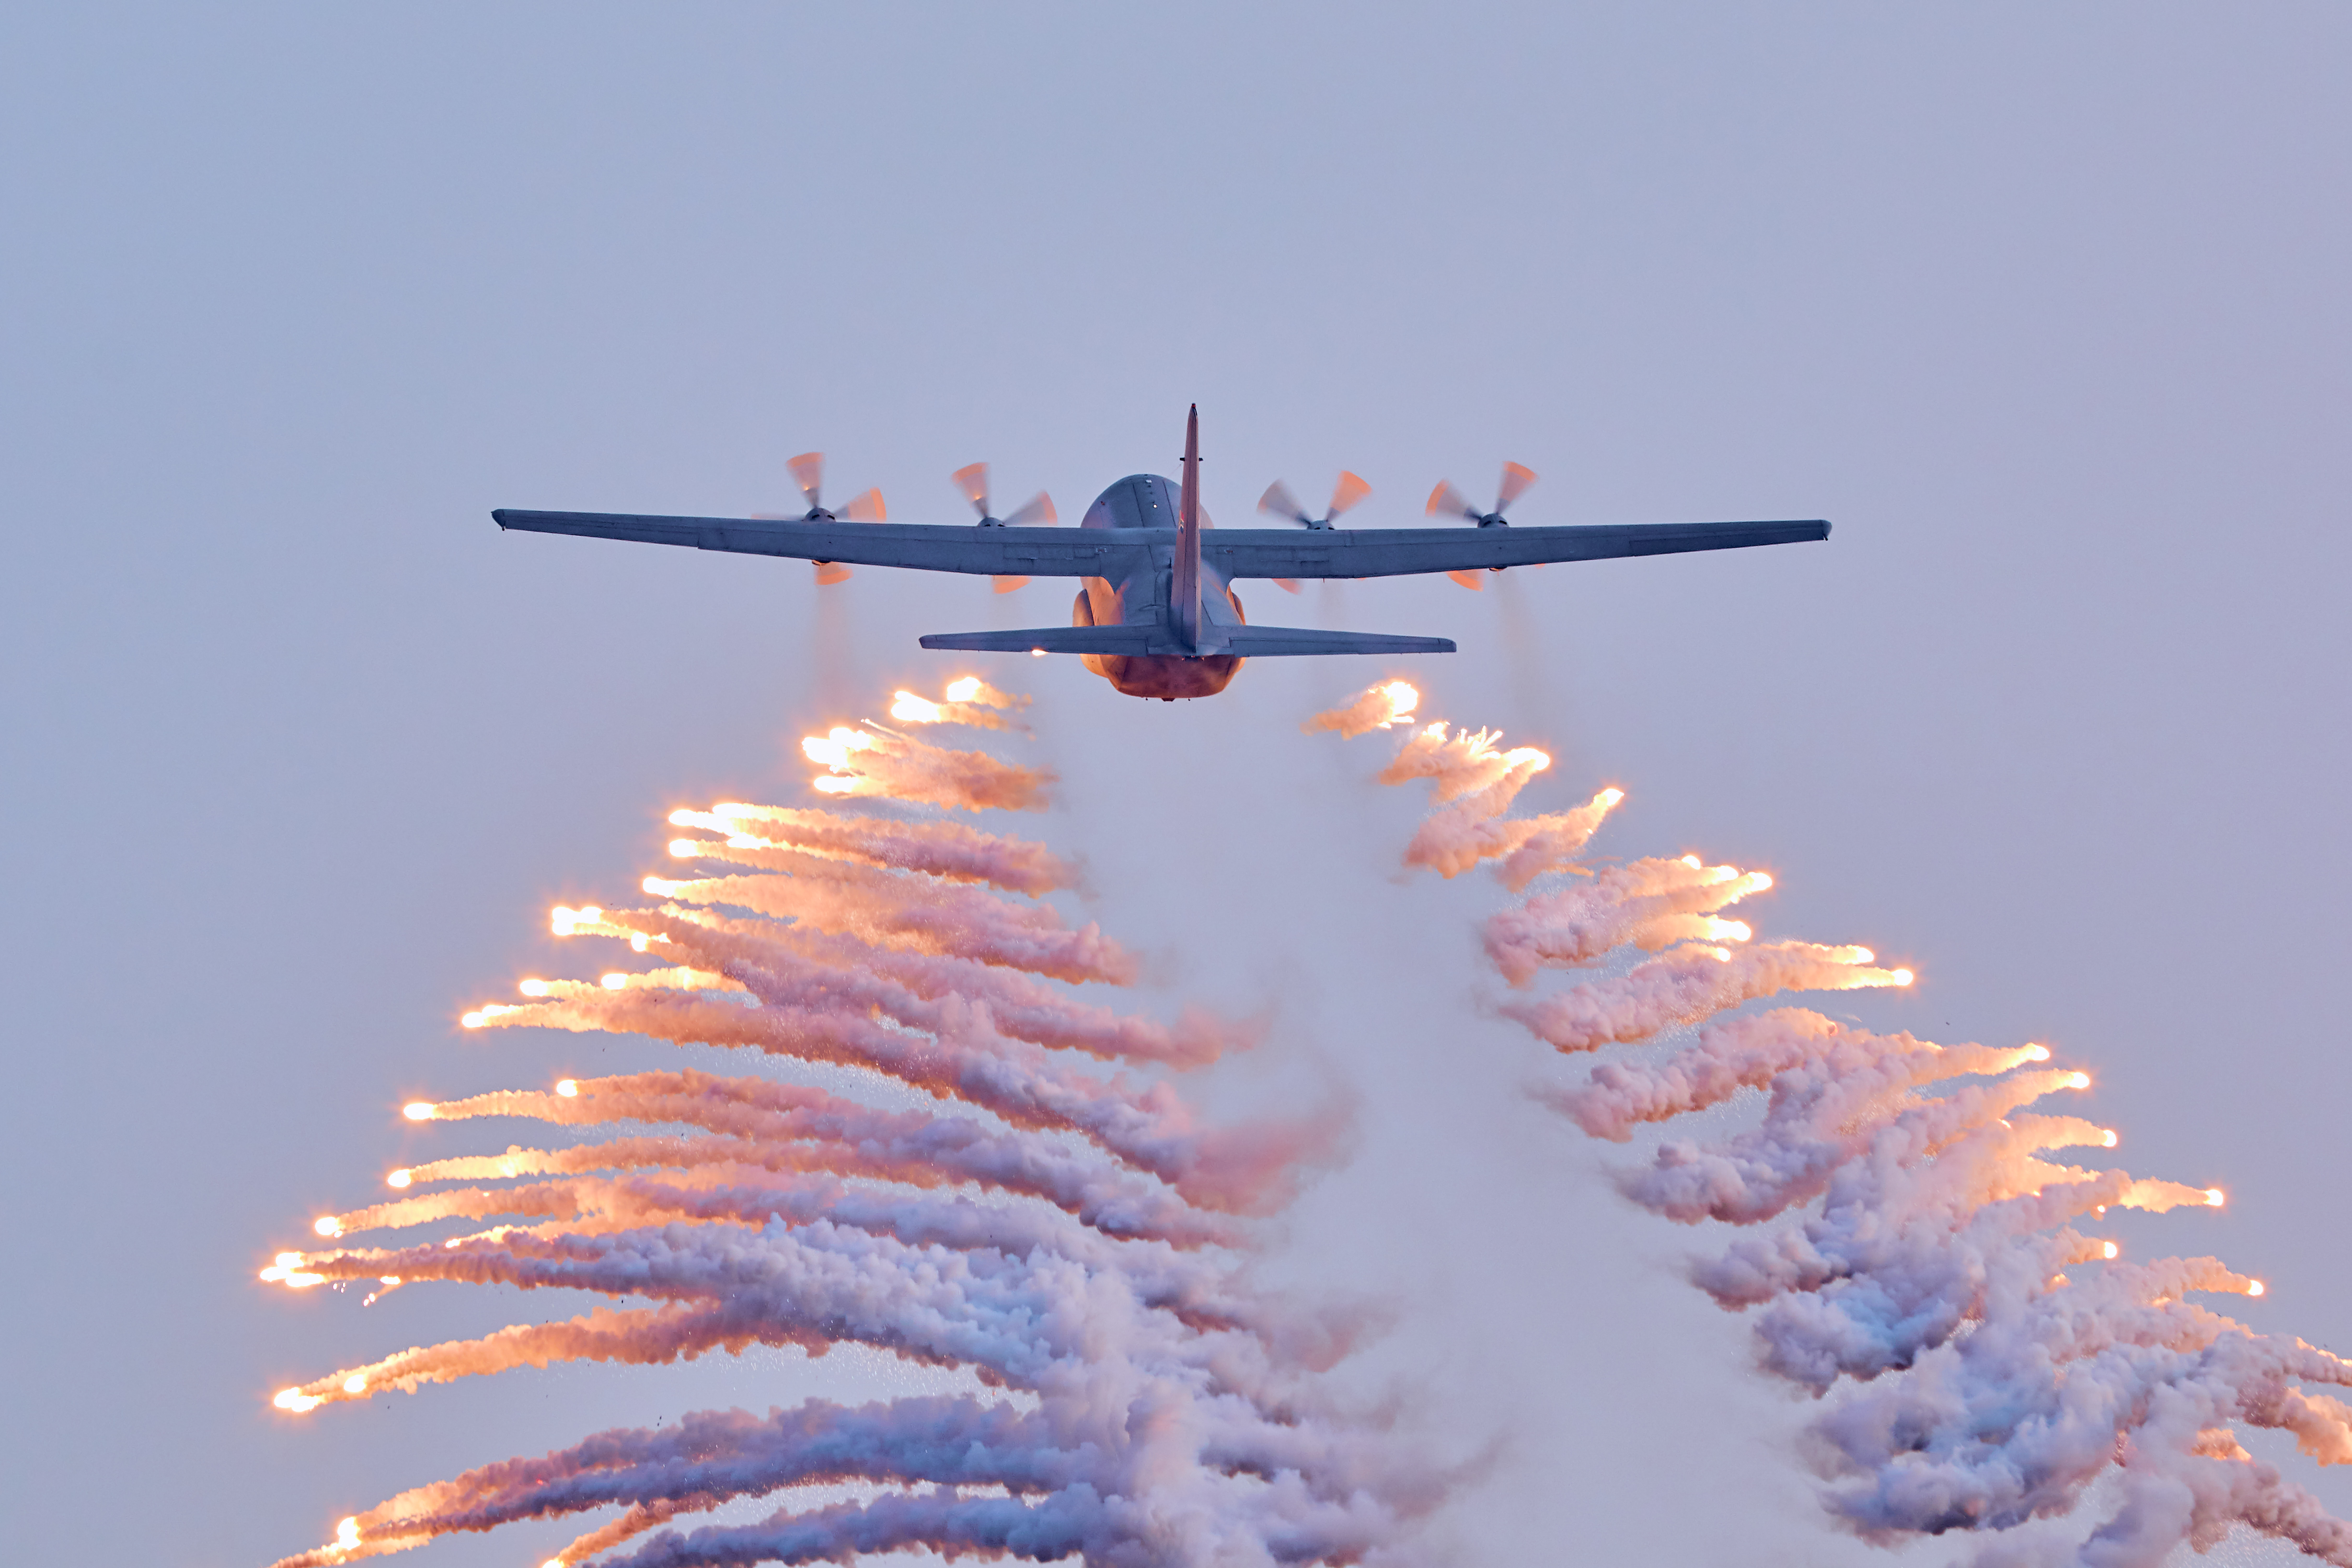 C-130 dropping flares during Waterkloof AAD2018